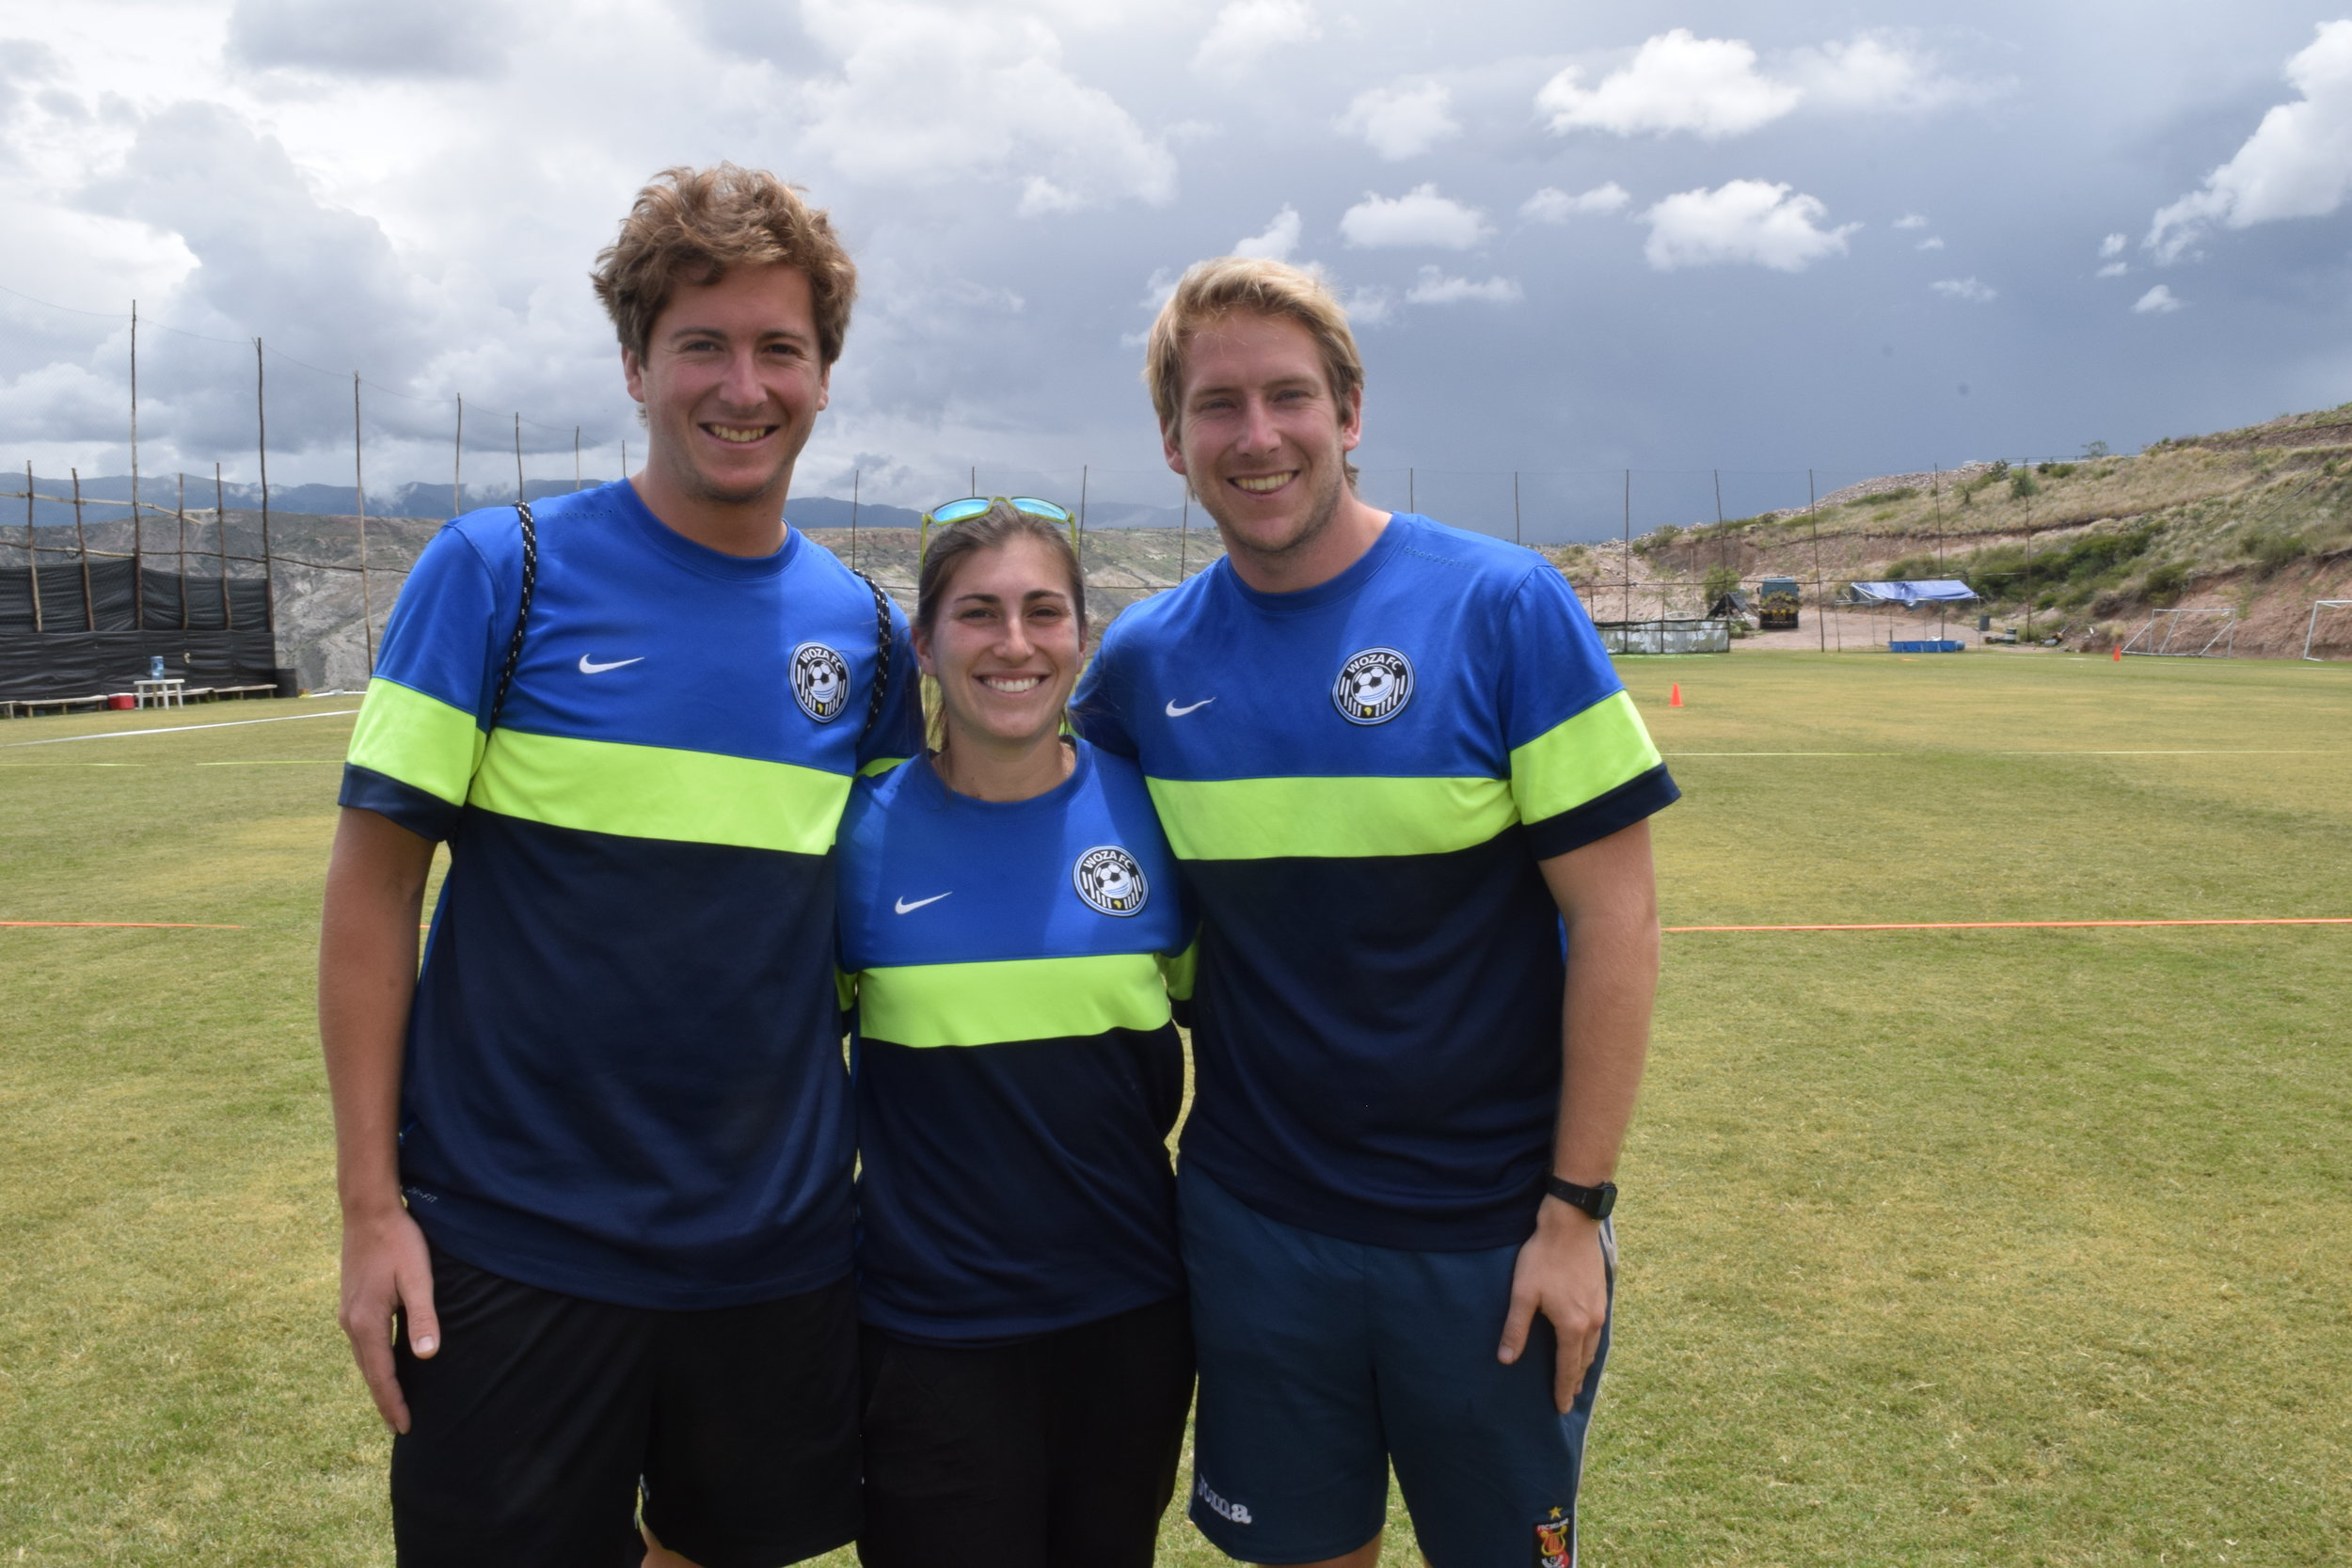 Matt Aryes with the Co-Directors of Woza Soccer,Kate Silverman and Chris Kaimmer, in Peru.